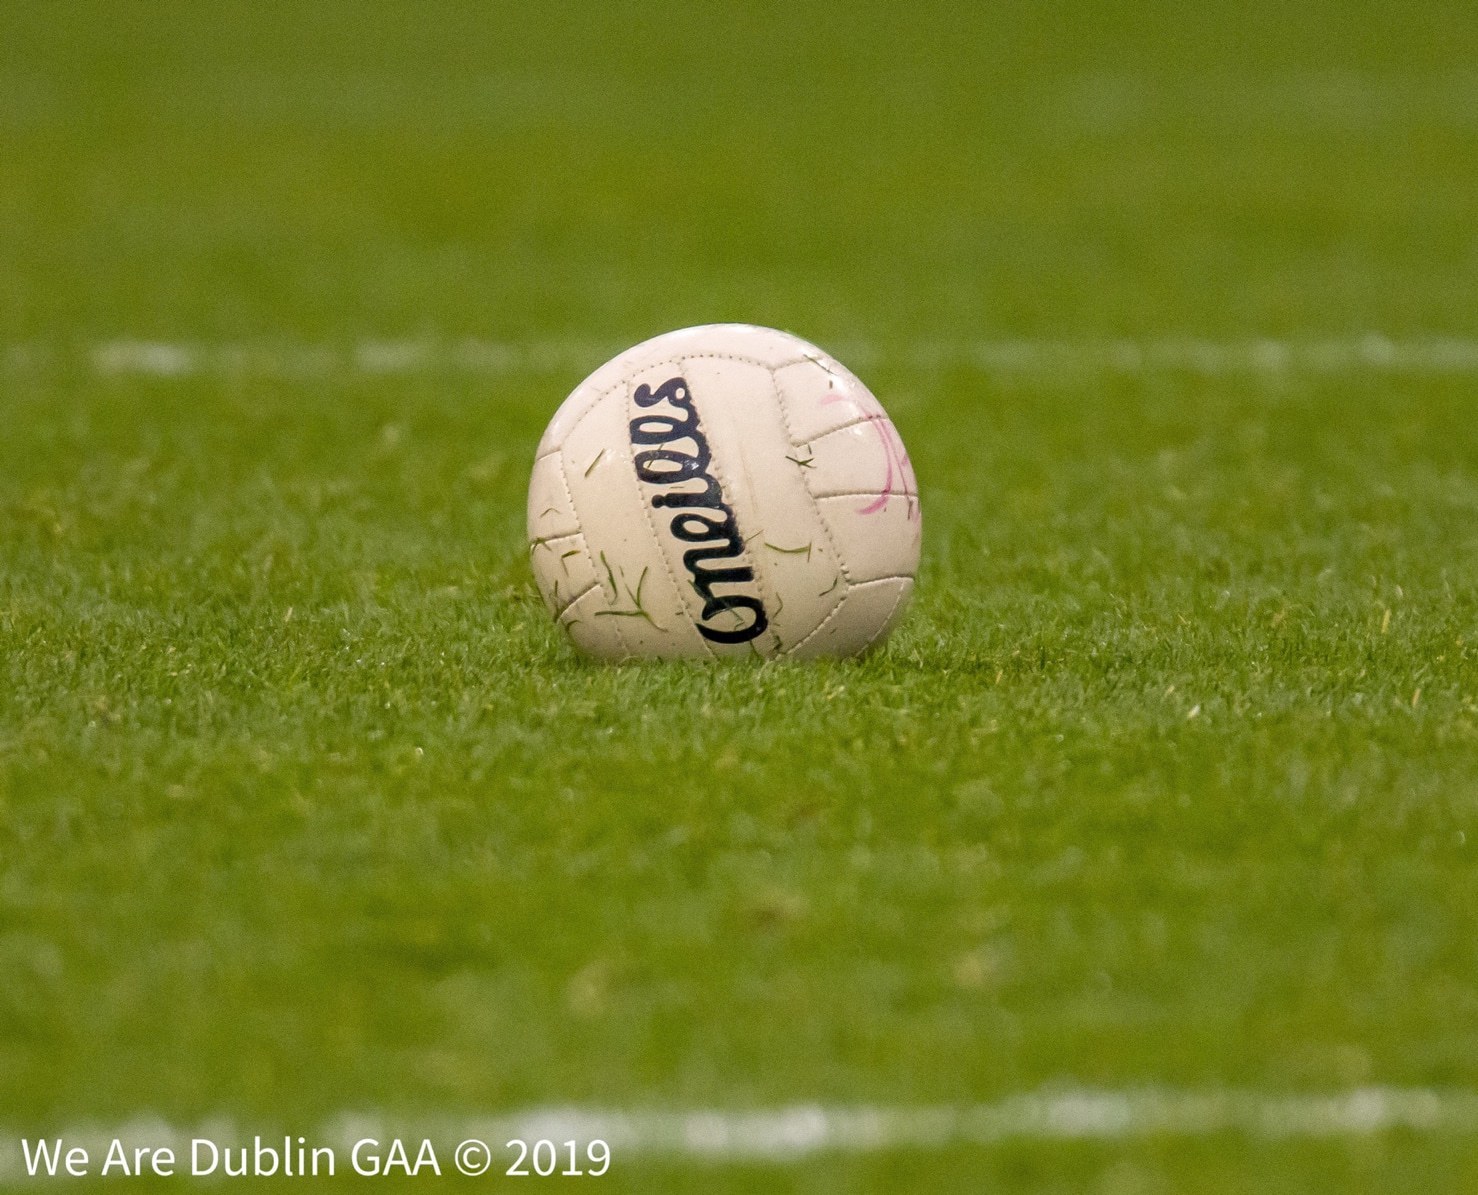 A single Gaelic football idle on a pitch to signify the Ladies Gaelic football Association's decision to cancel a number of LGFA competitions due to Covid-19